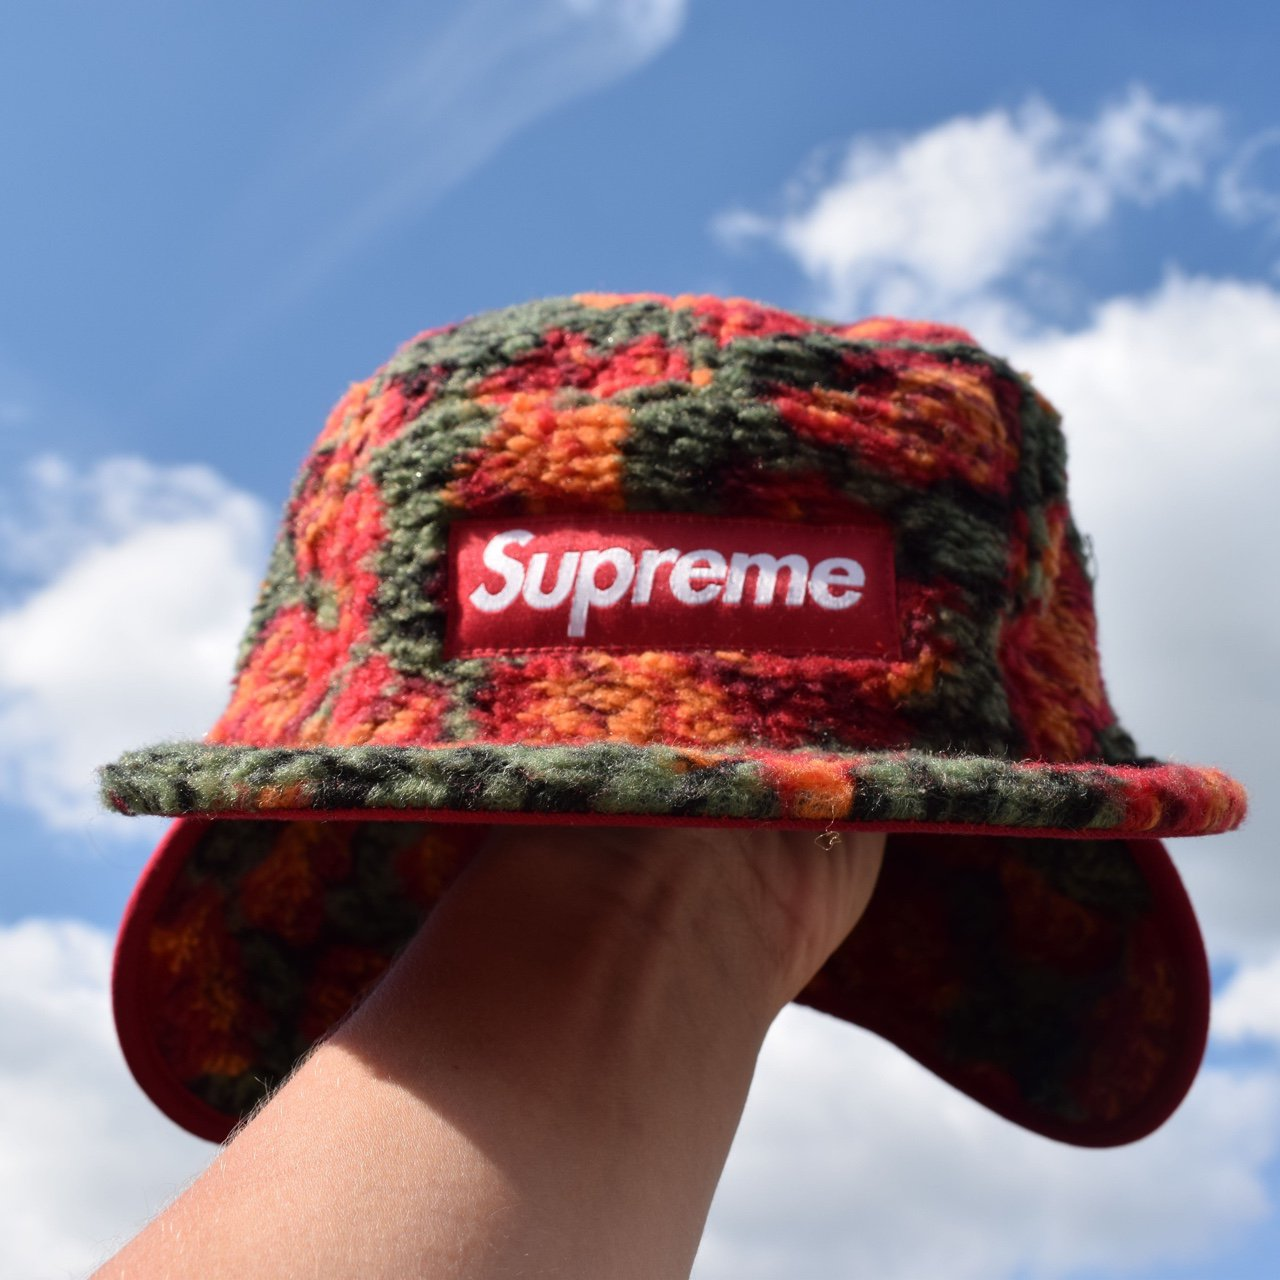 Supreme Rose Sherpa Cap with Ear Flaps. Ignore Palace Hat - Depop 07d57cd7222